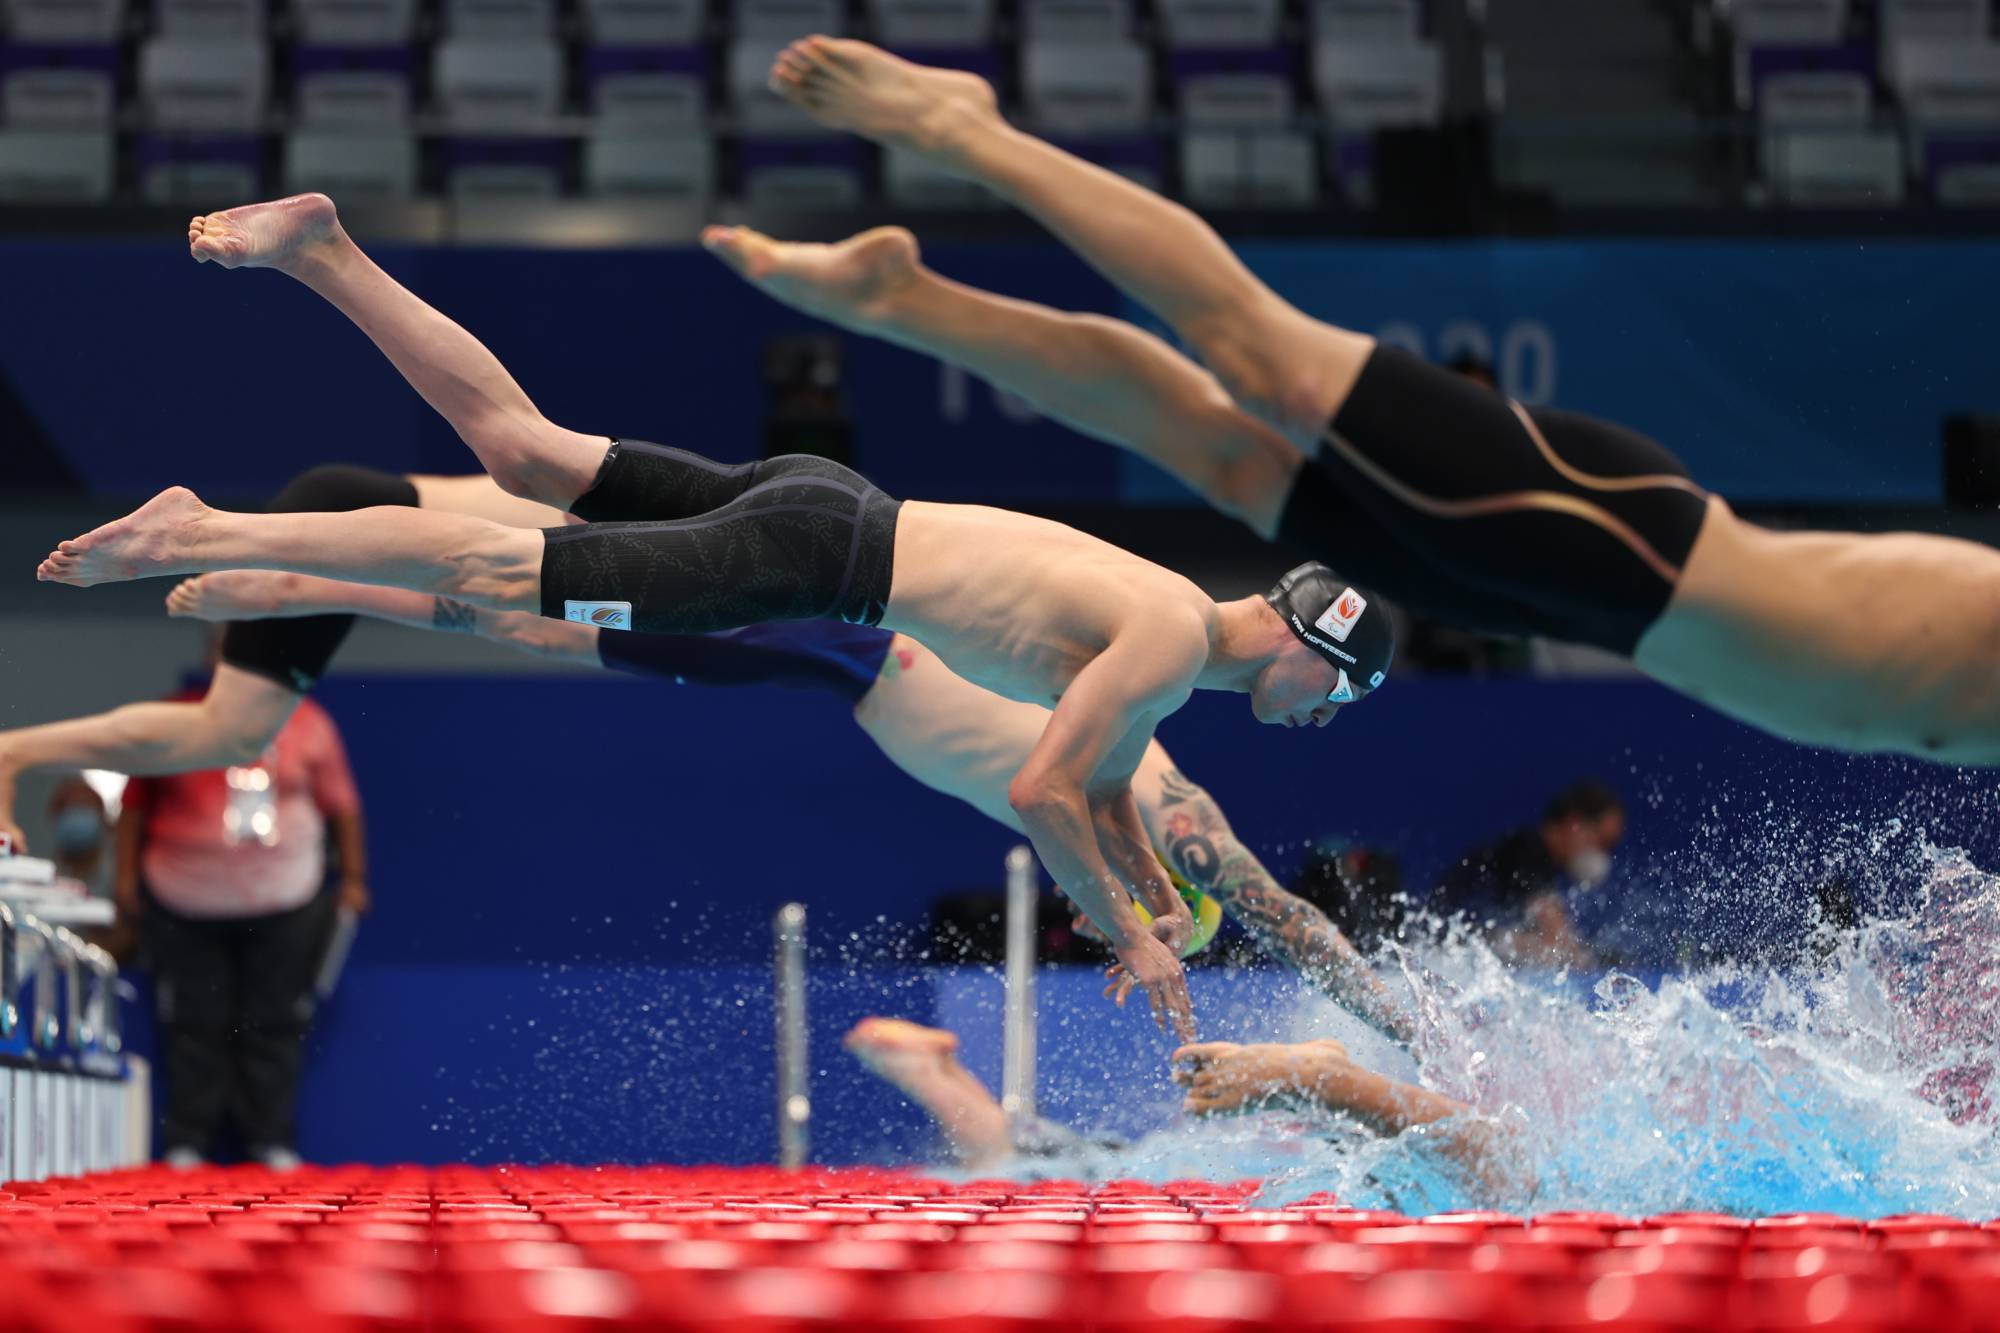 The start of a qualifying heat for the men's S6 100-m freestyle   REUTERS